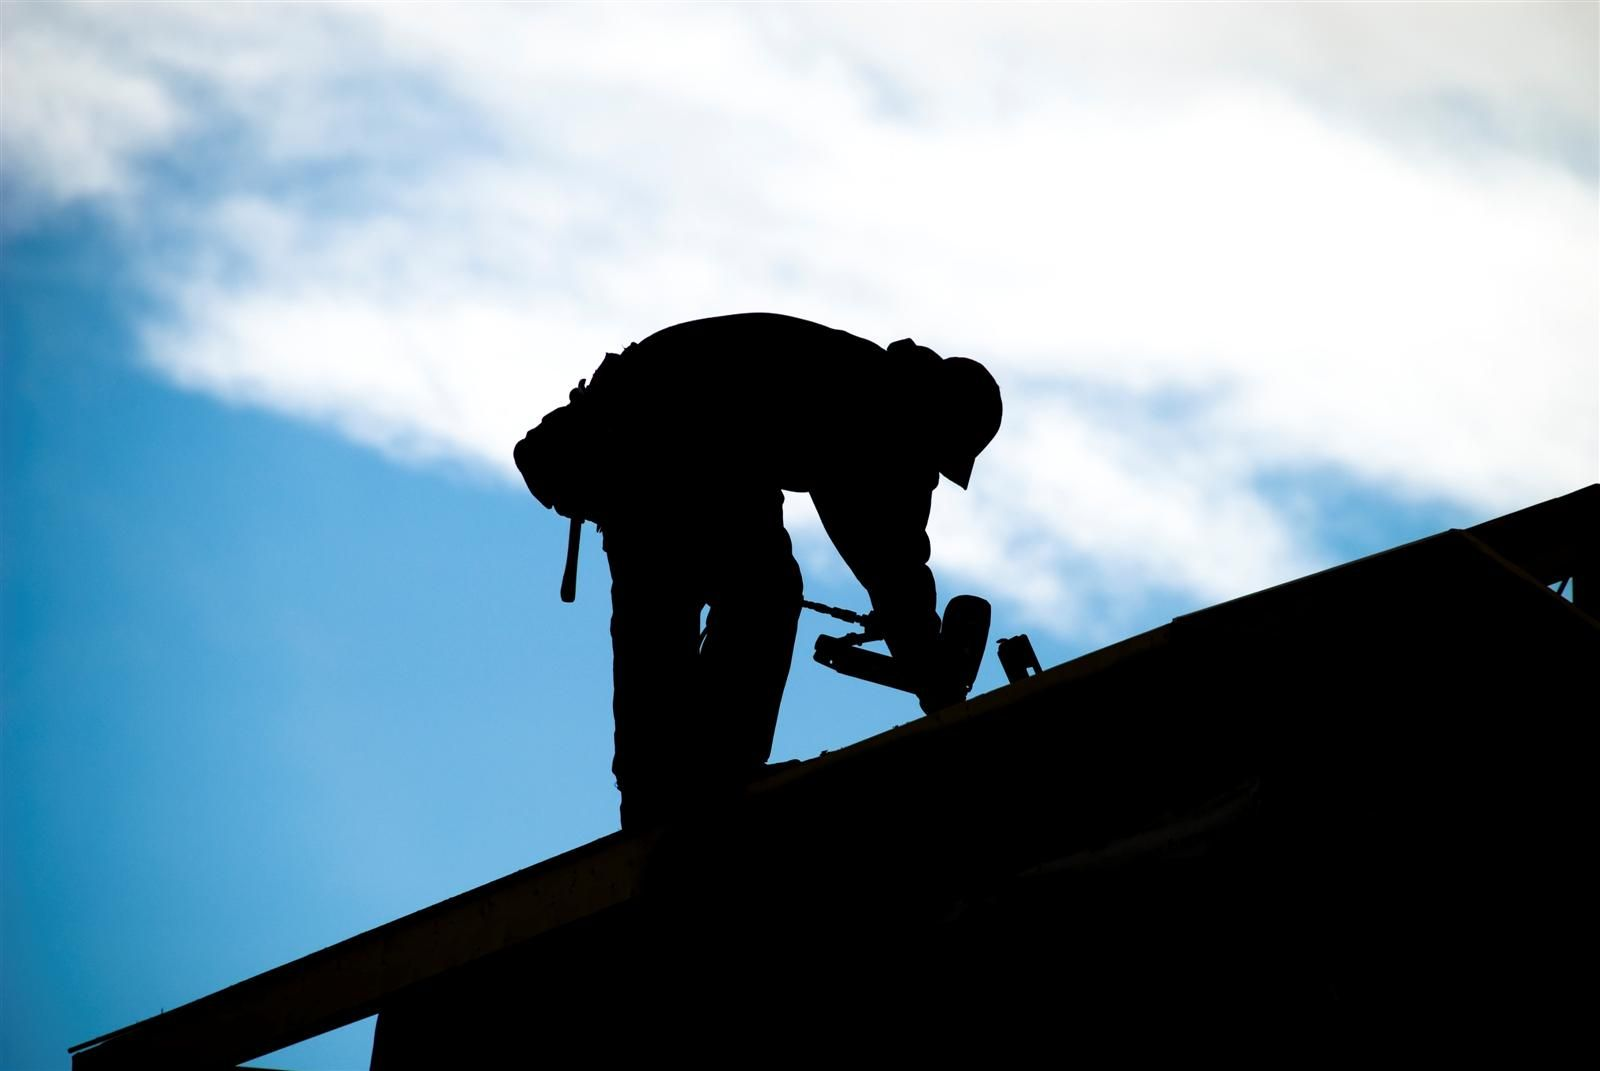 We Are The 1 Roof Repair Providers In Vancouver If You Are Tired Of Your Roof Looking Like Its 50 Years Old Roofing Contractors Roofing Services Roof Repair